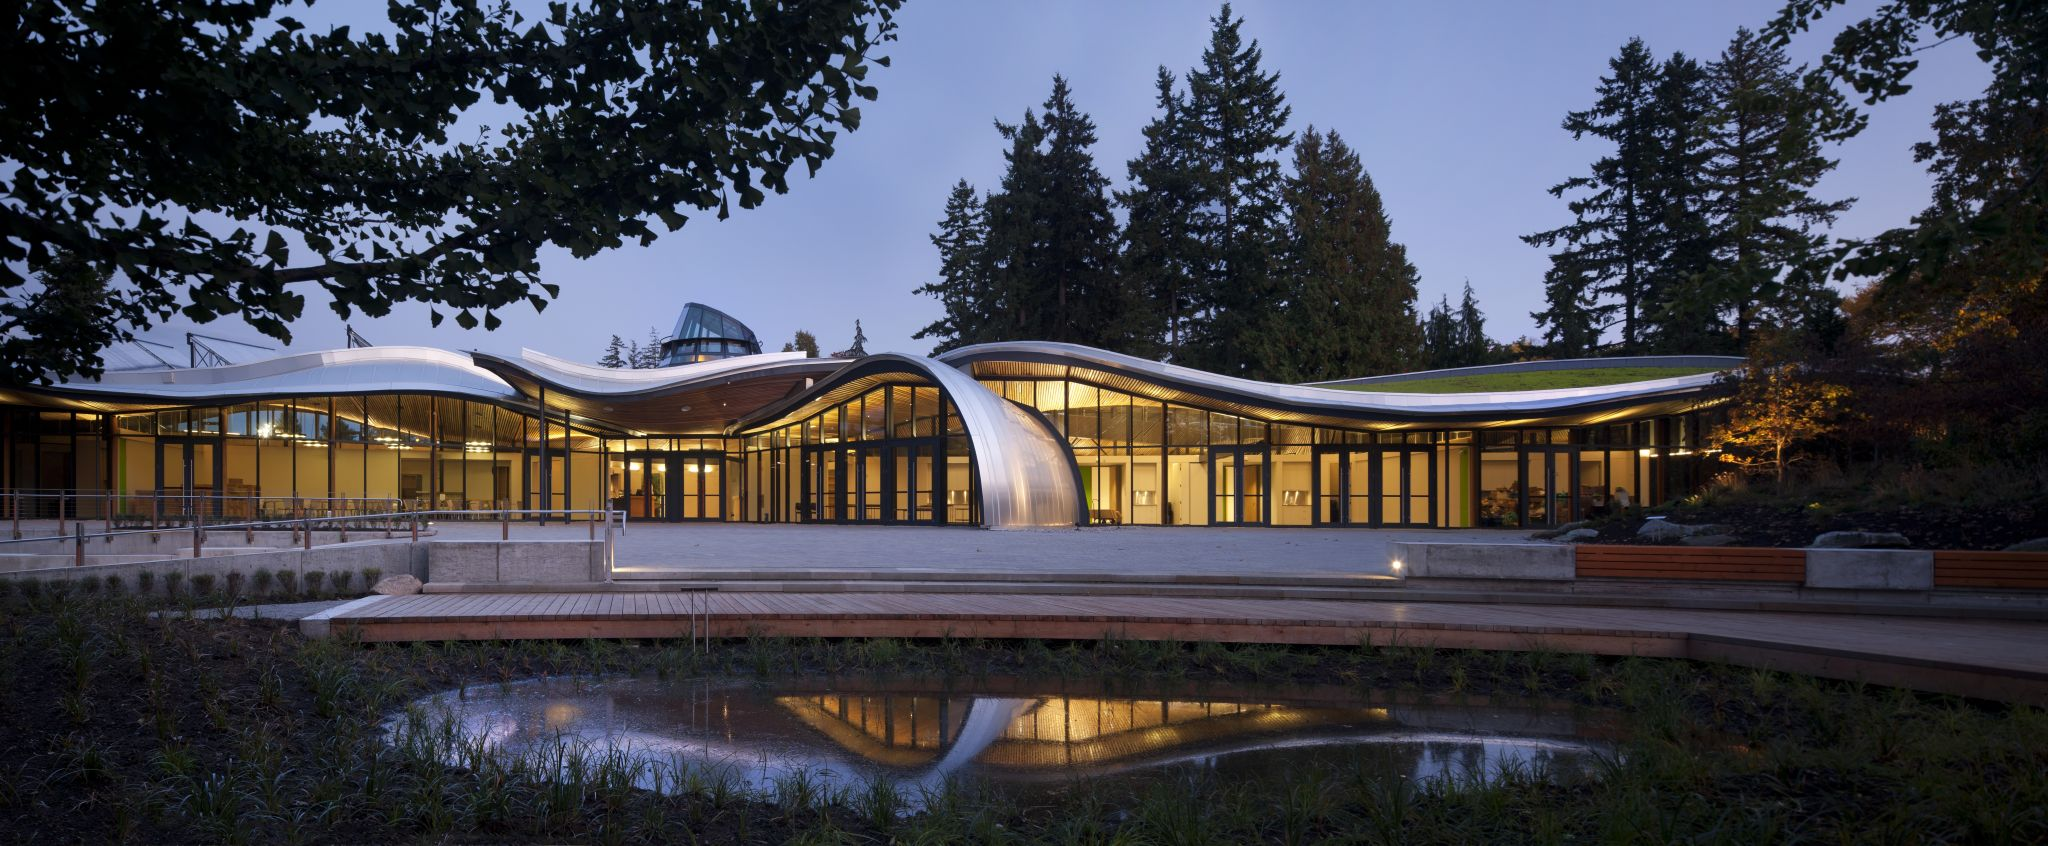 The completed VanDusen Botanical Gardens Visitor Centre (also pictured on the cover) achieved its goal of being a carbon-neutral facility. Photo © Nic Lehoux. Photo courtesy Perkins+Will